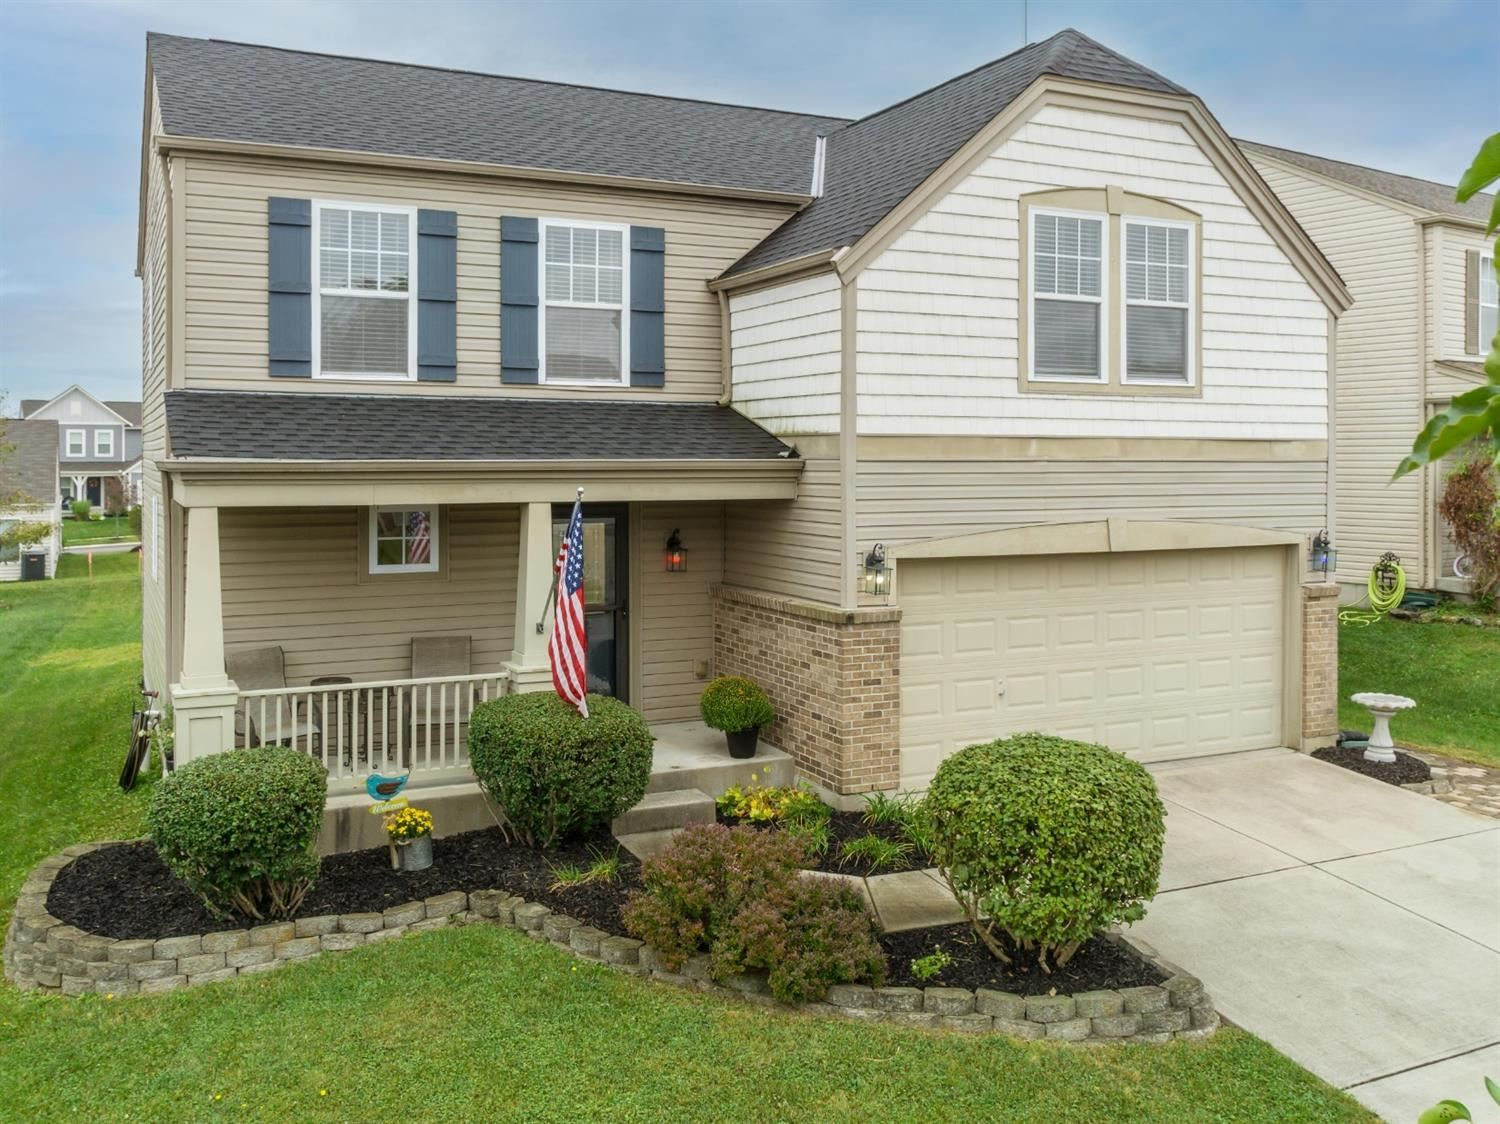 5596 Sterling Court, South Lebanon, OH 45065 - #: 1714844